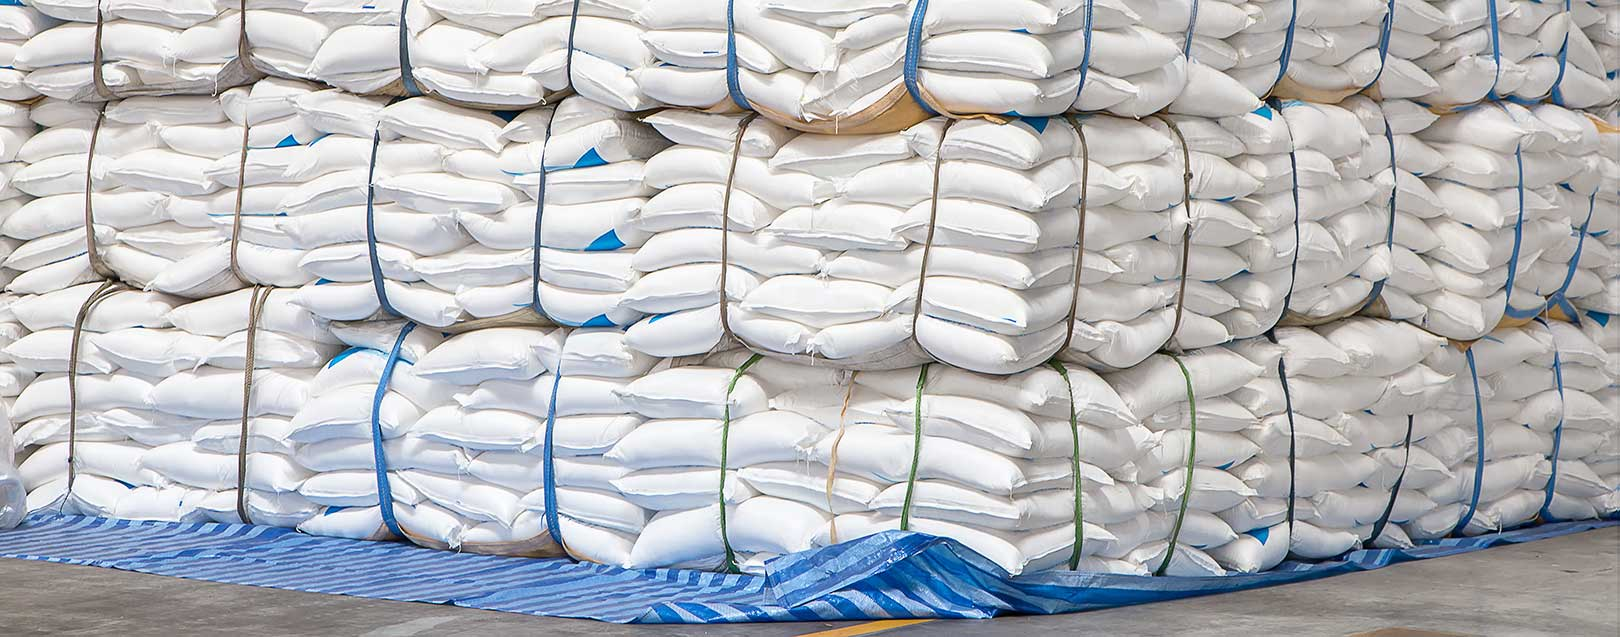 Indian sugar refiners to gain from export tax